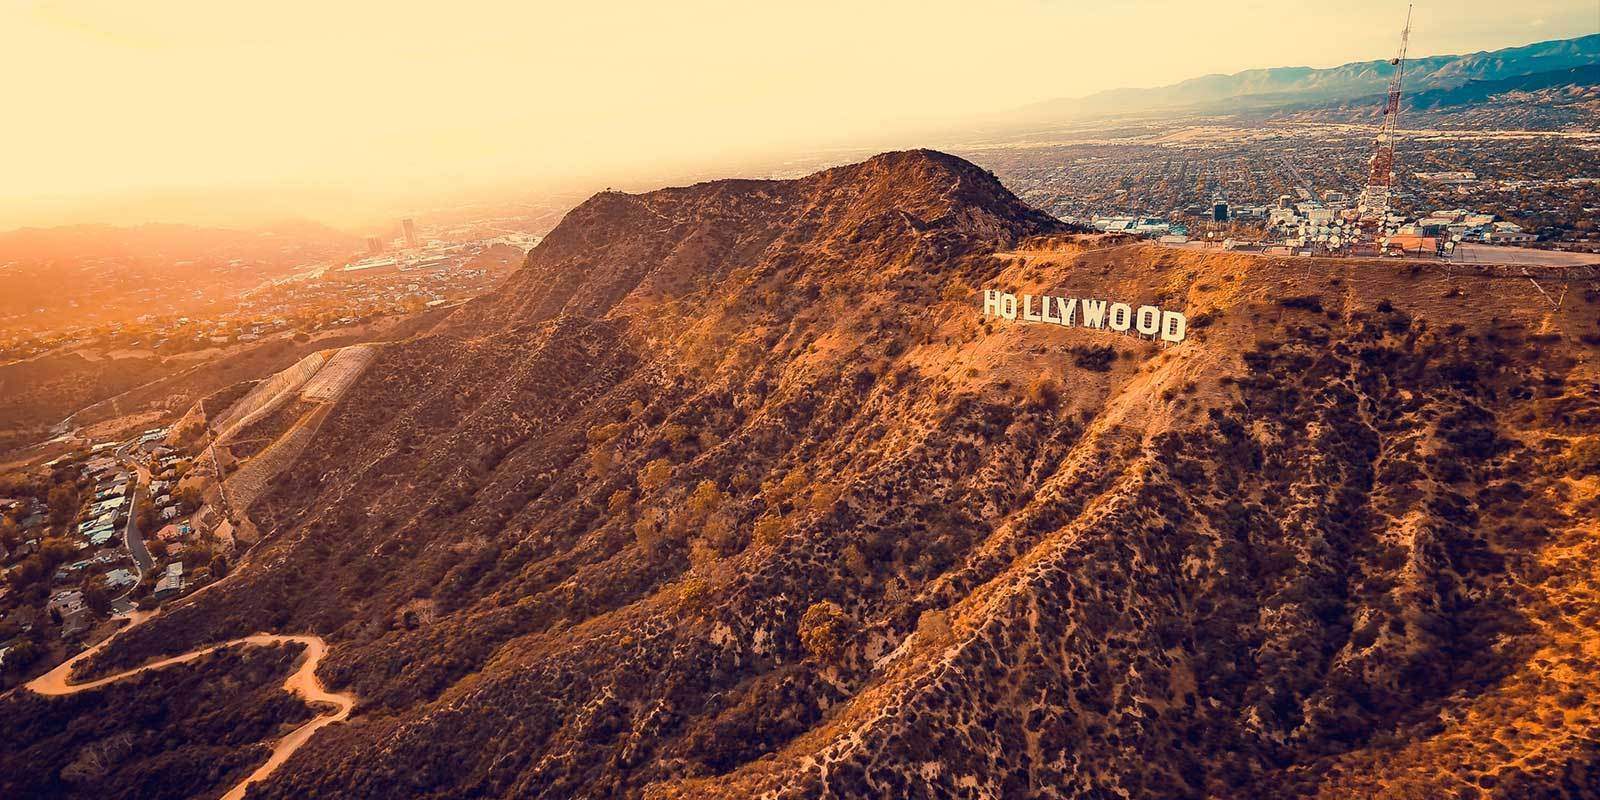 Top 5 activities FREE activities to do in L.A.